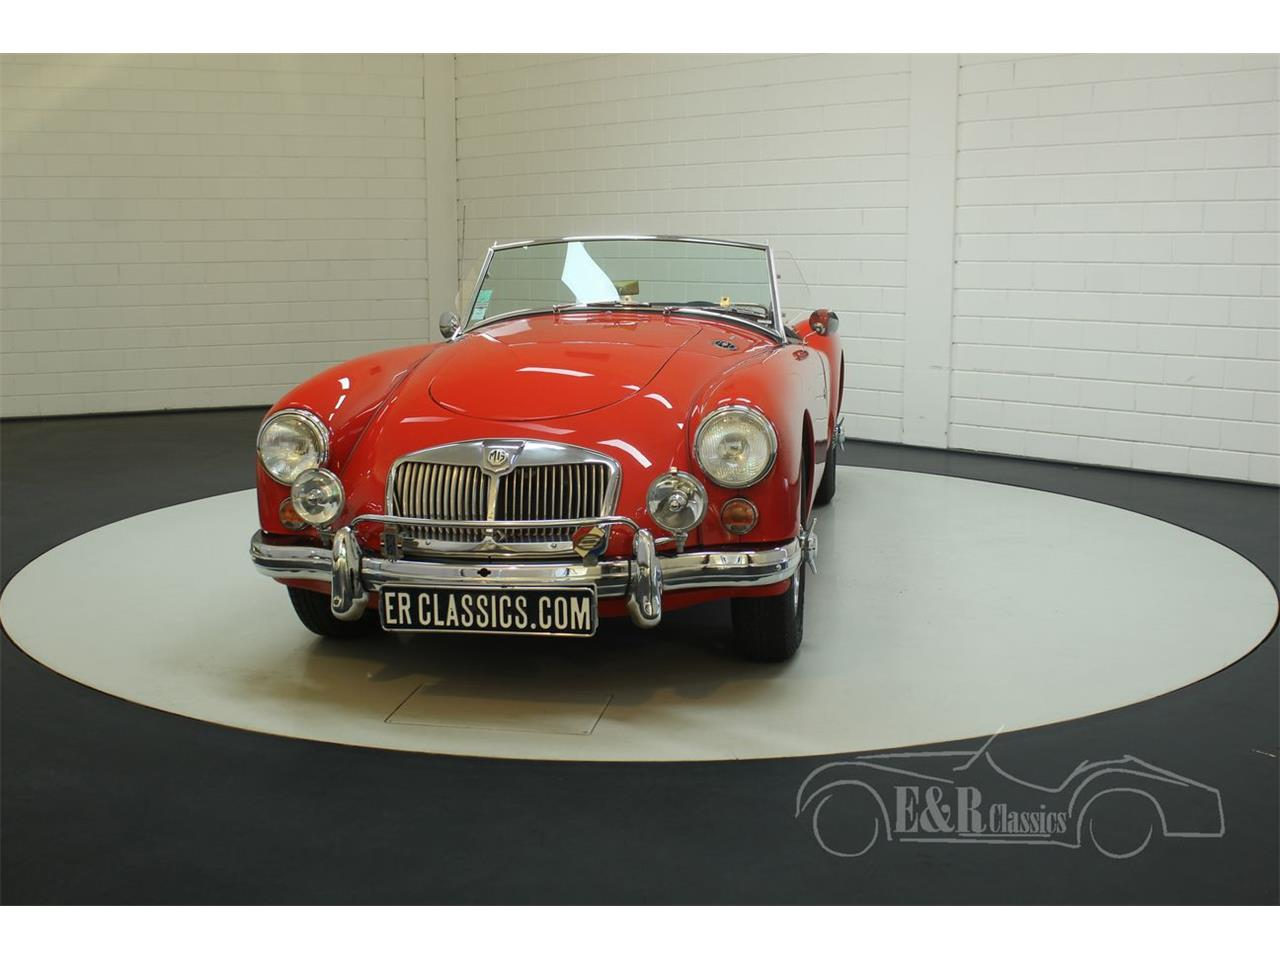 Large Picture of Classic '62 MG MGA located in Waalwijk noord brabant - $44,900.00 - Q2W8